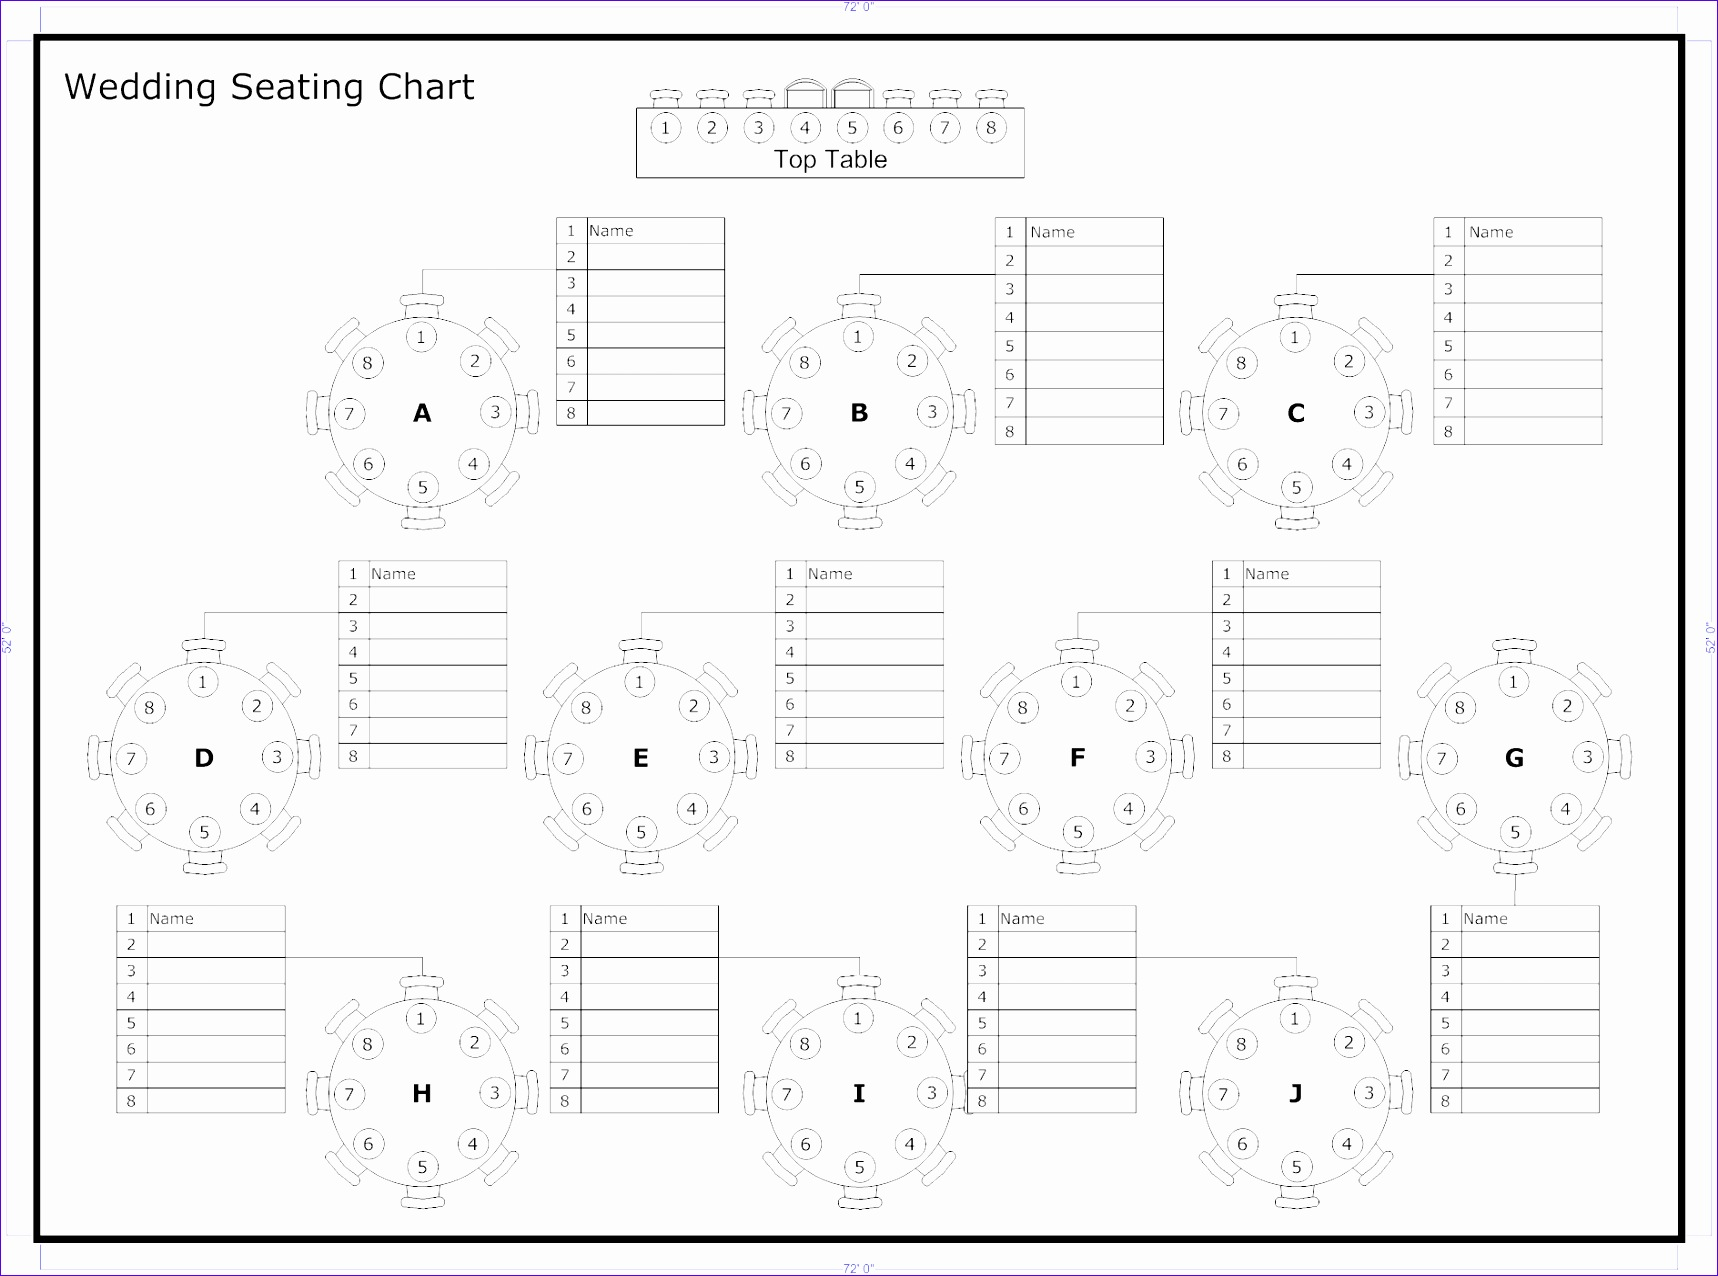 6 Wedding Seating Chart Template Excel